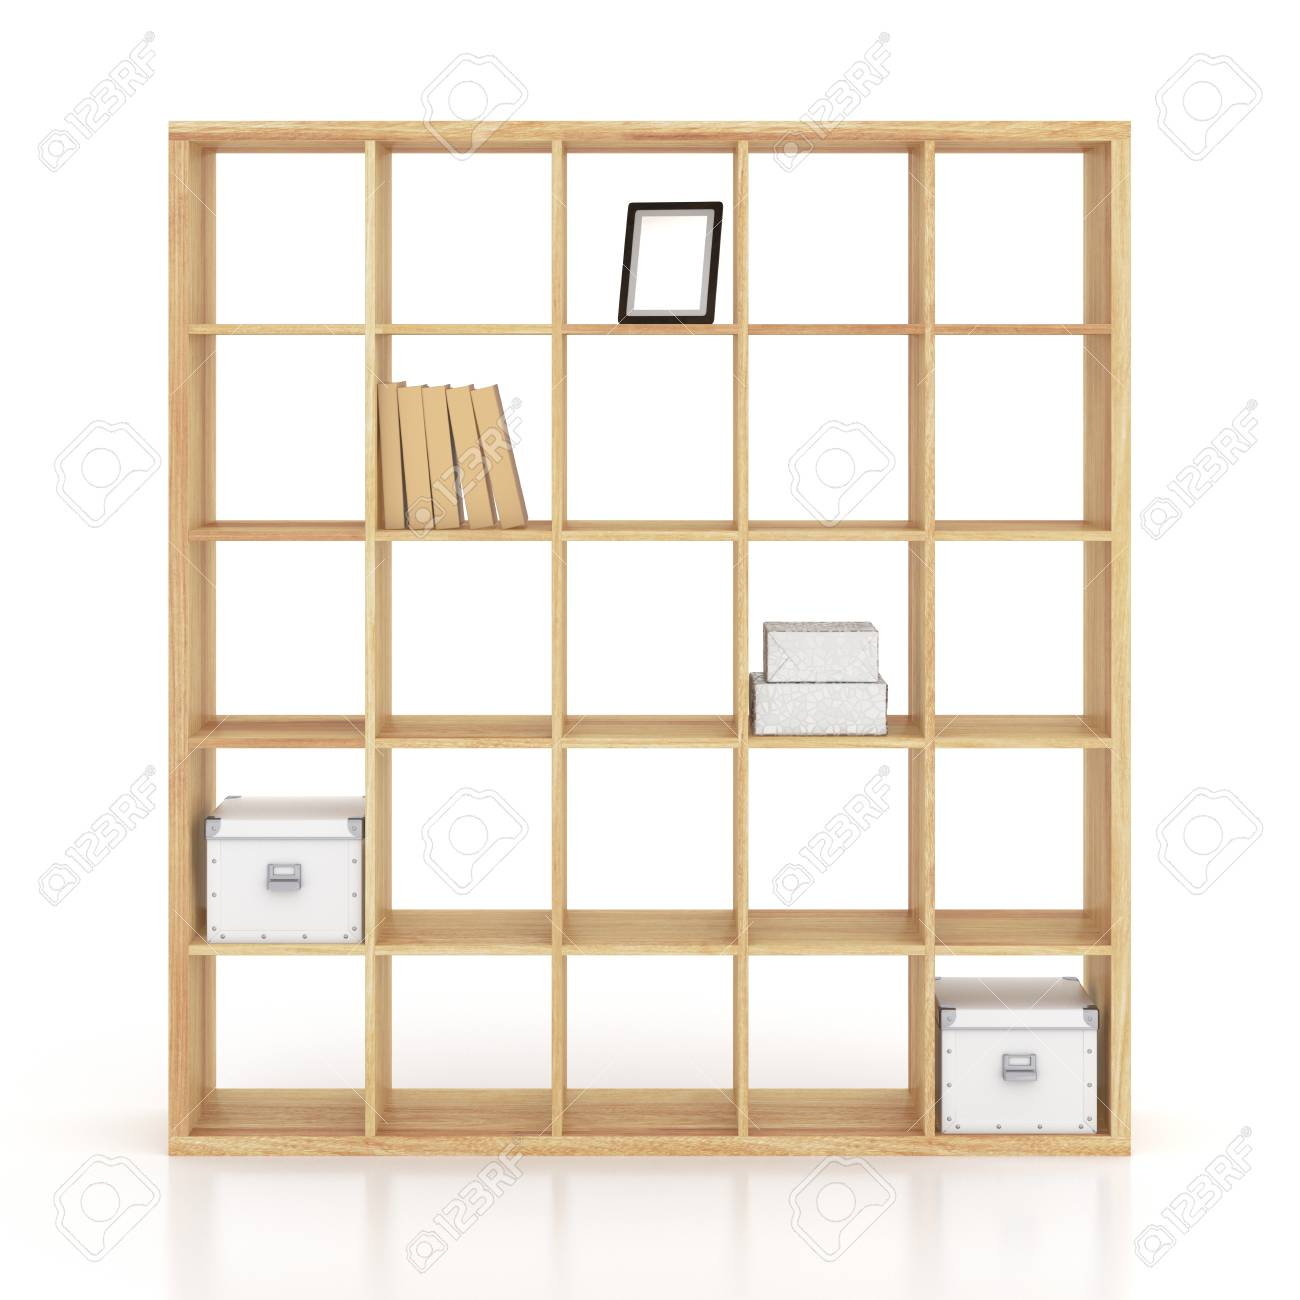 wooden book rack isolated on white background 3d render